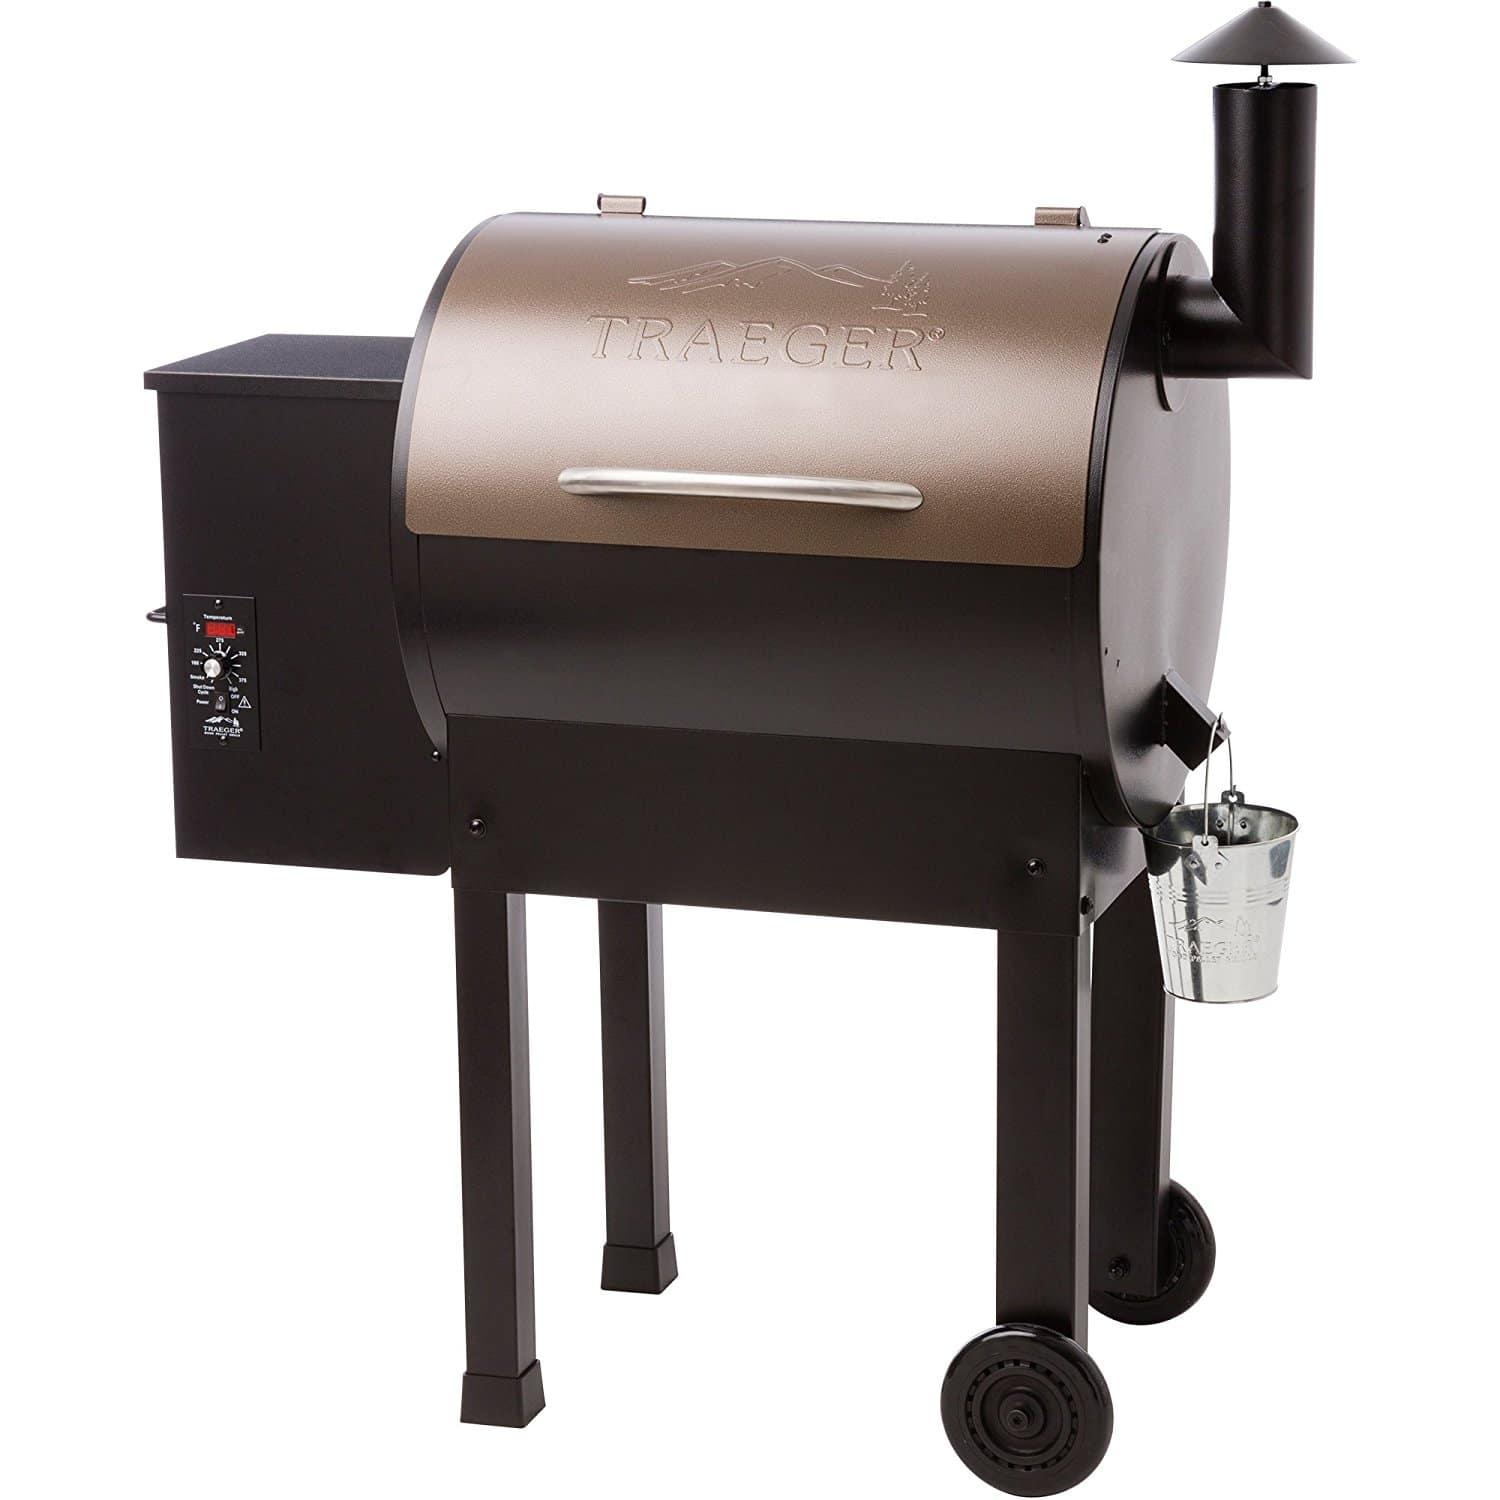 Traegar wood pellet grill reviews - Traeger Wood Pellet Grills Reviews 2018 - OUTDOOR FIRE PITS